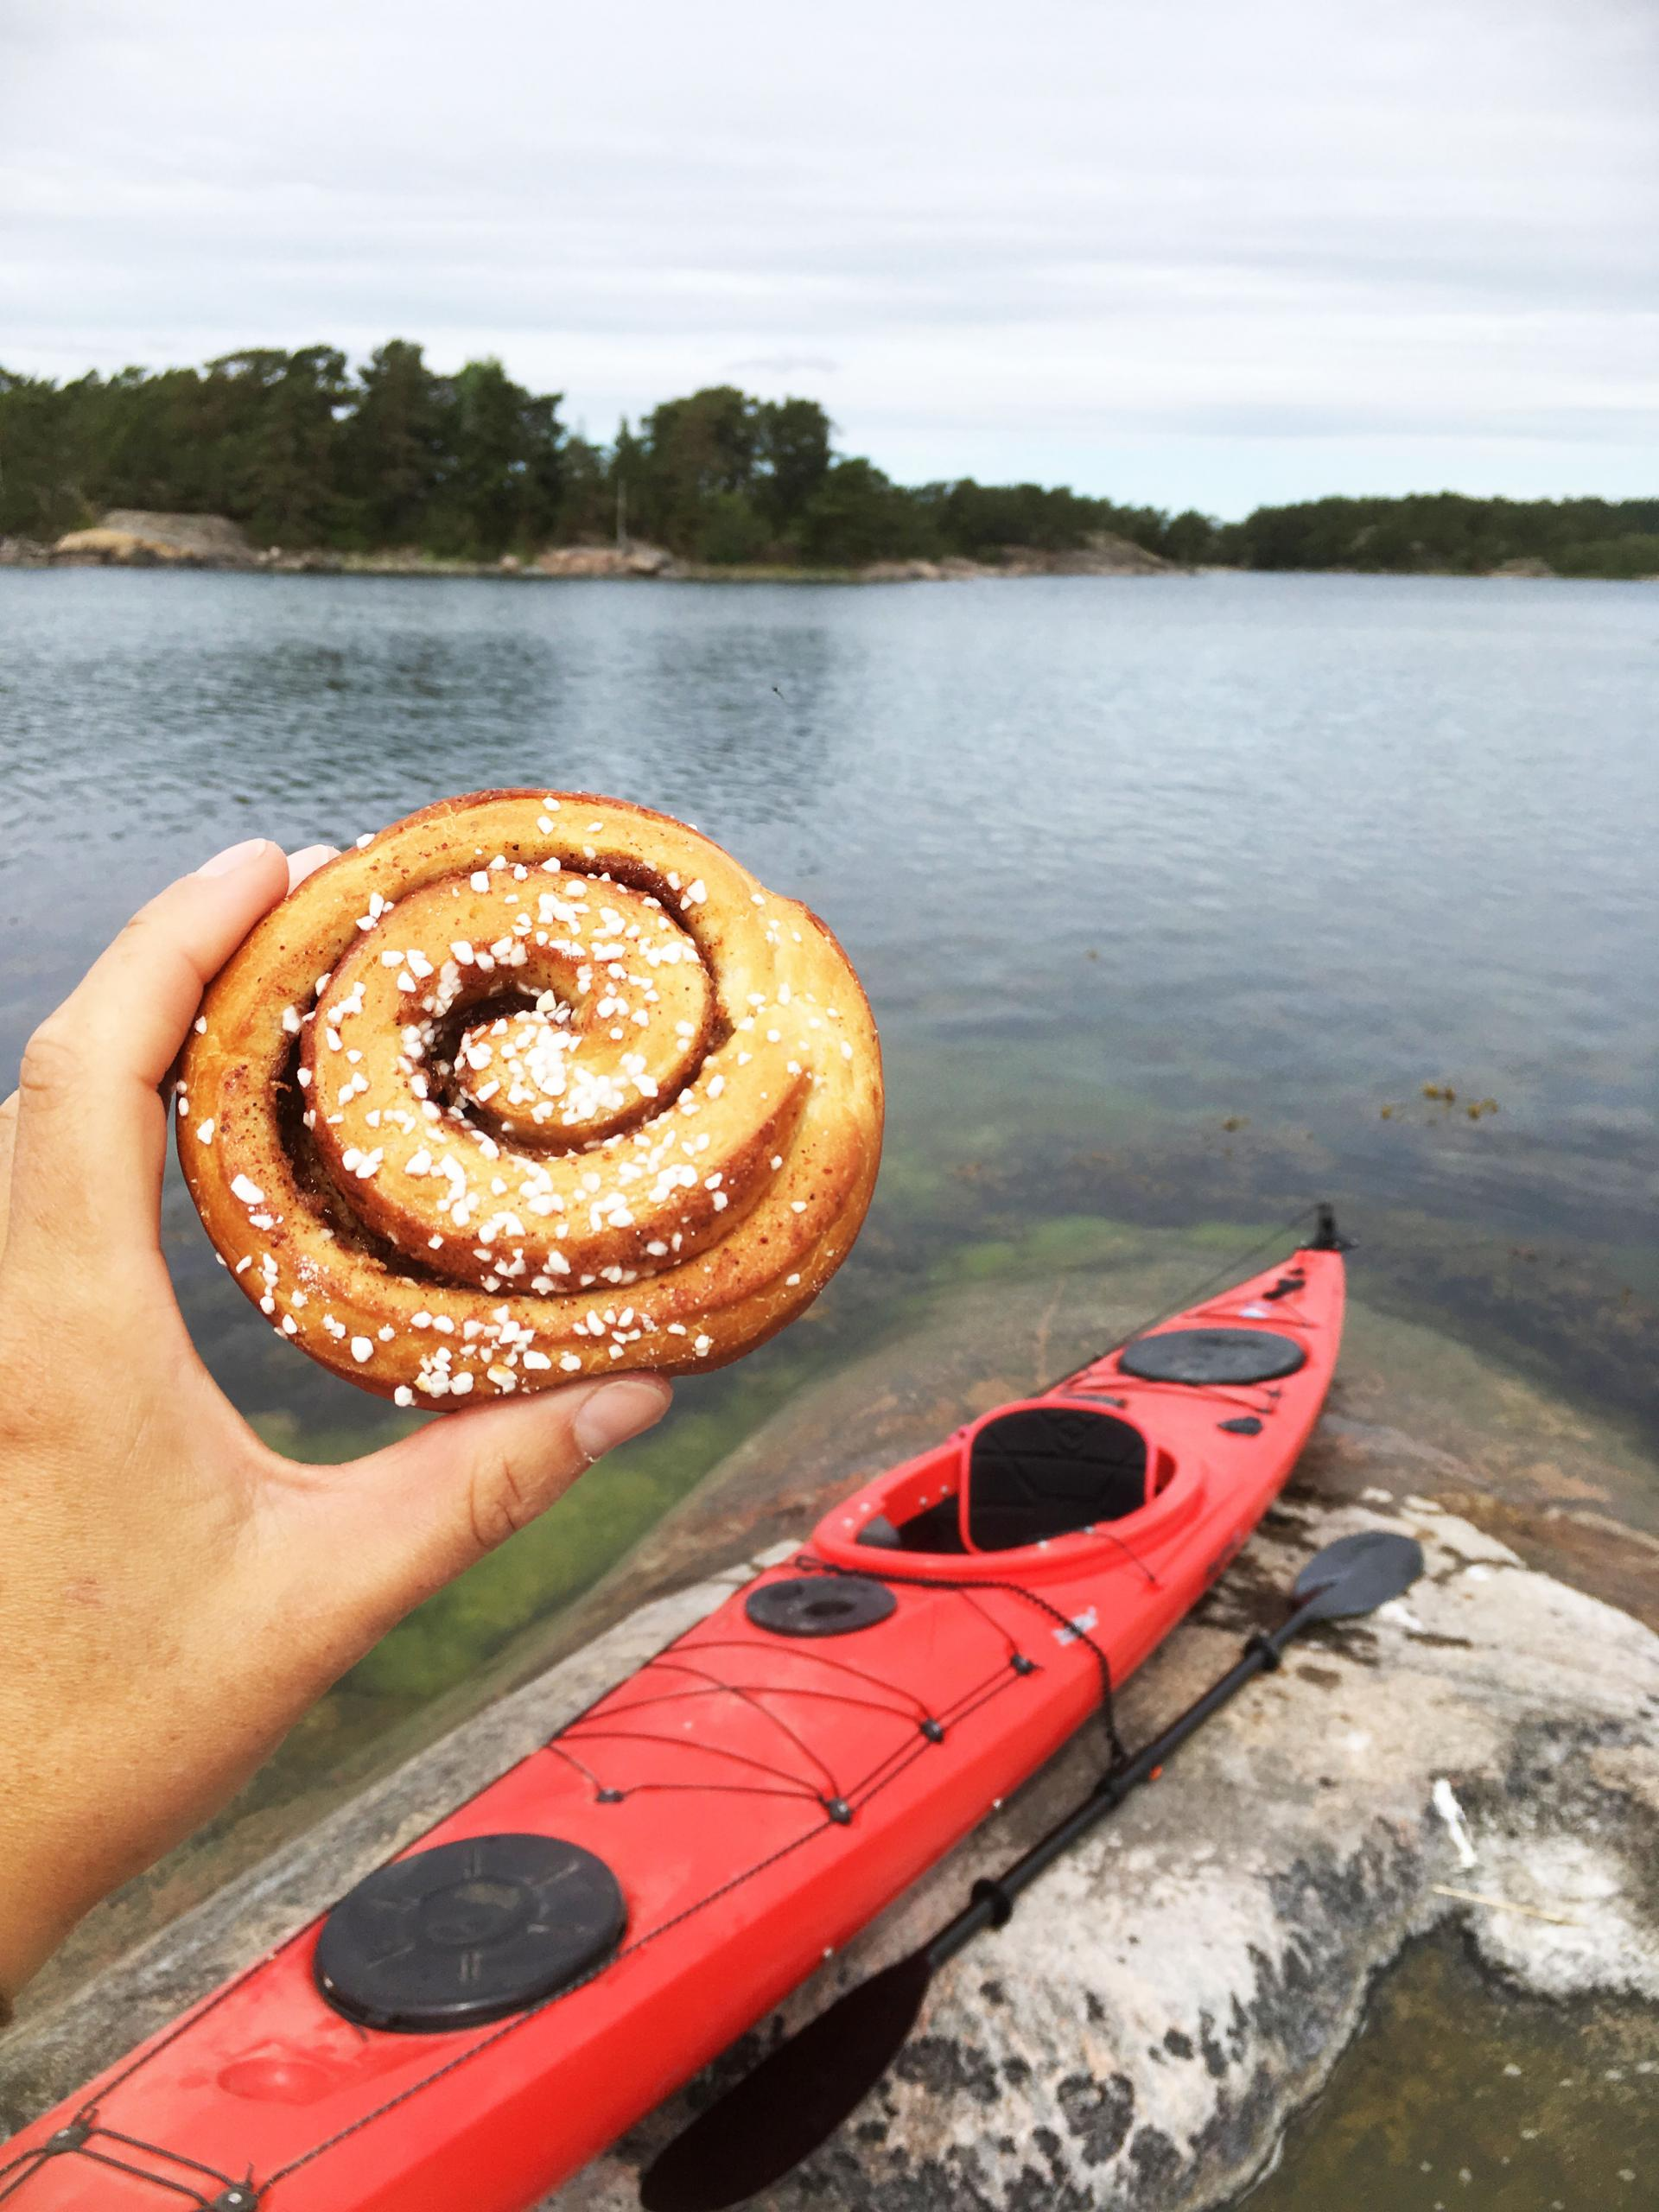 Sormland Sweden travel guide: explore Stockholm archipelago islands the girl outdoors